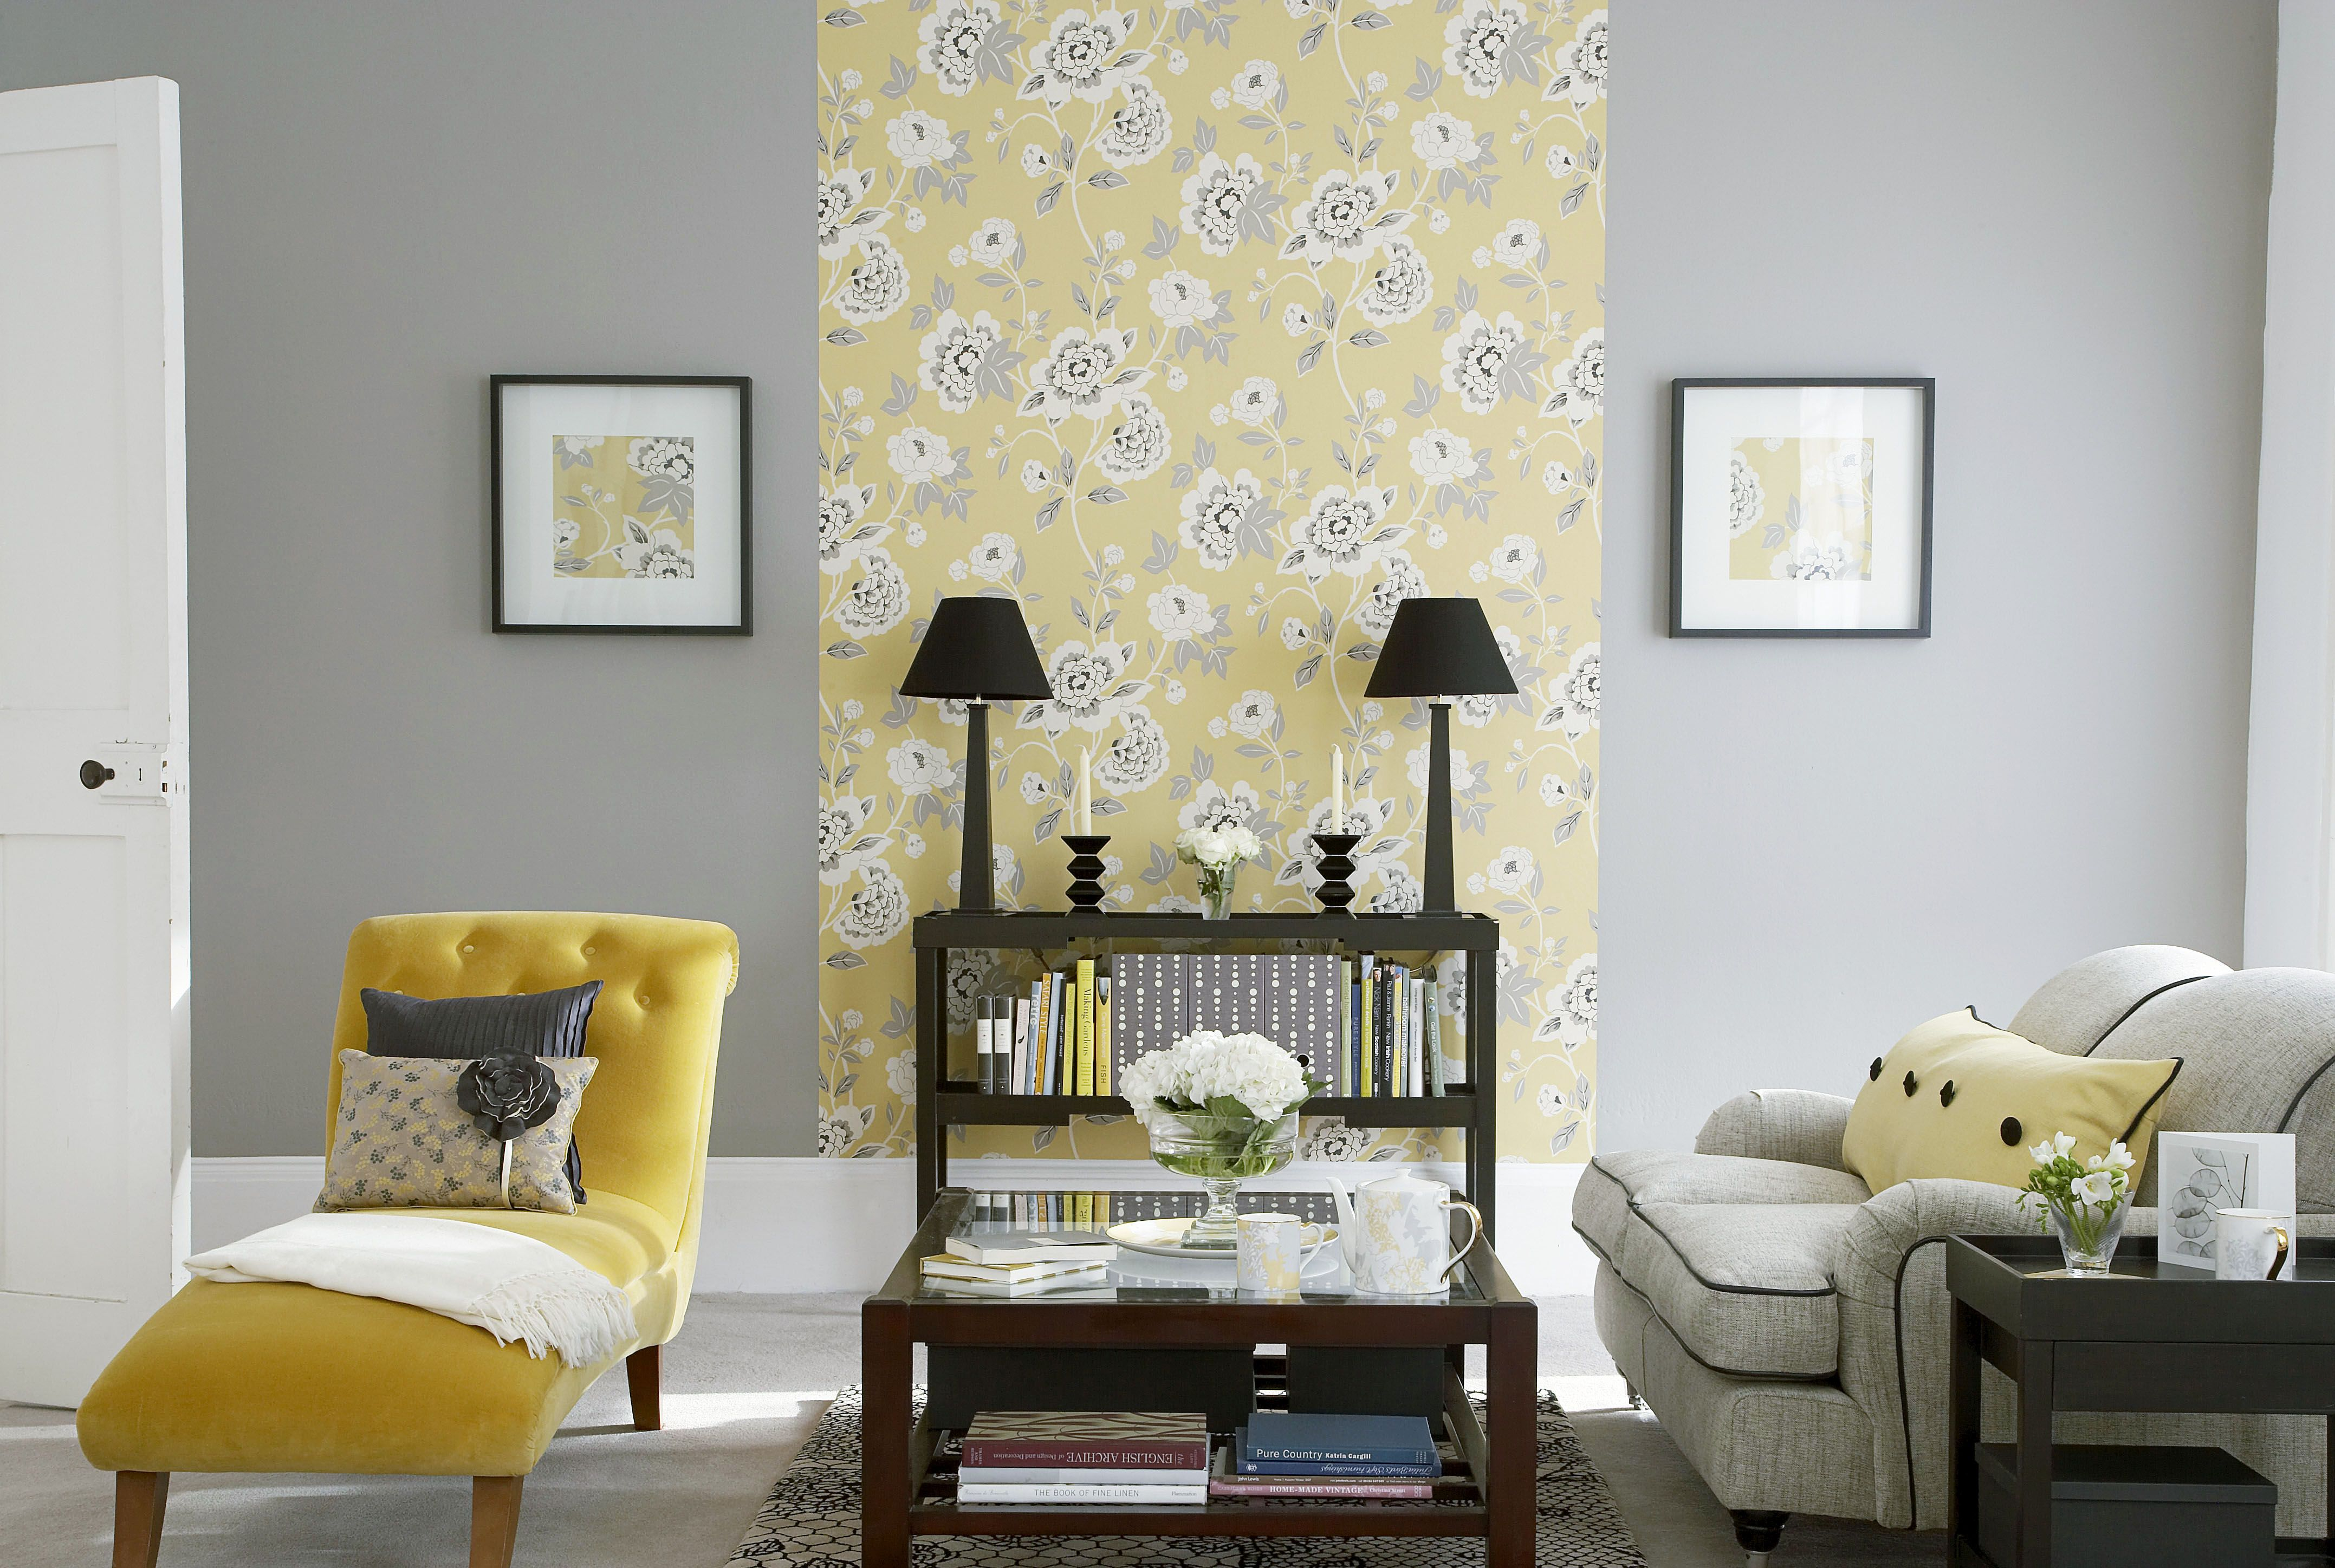 Bedroom Wall Painting Designs For Hall When It Comes To Accent Wall Painting Ideas Polka Dots Can Make A Room Playful And Cheery